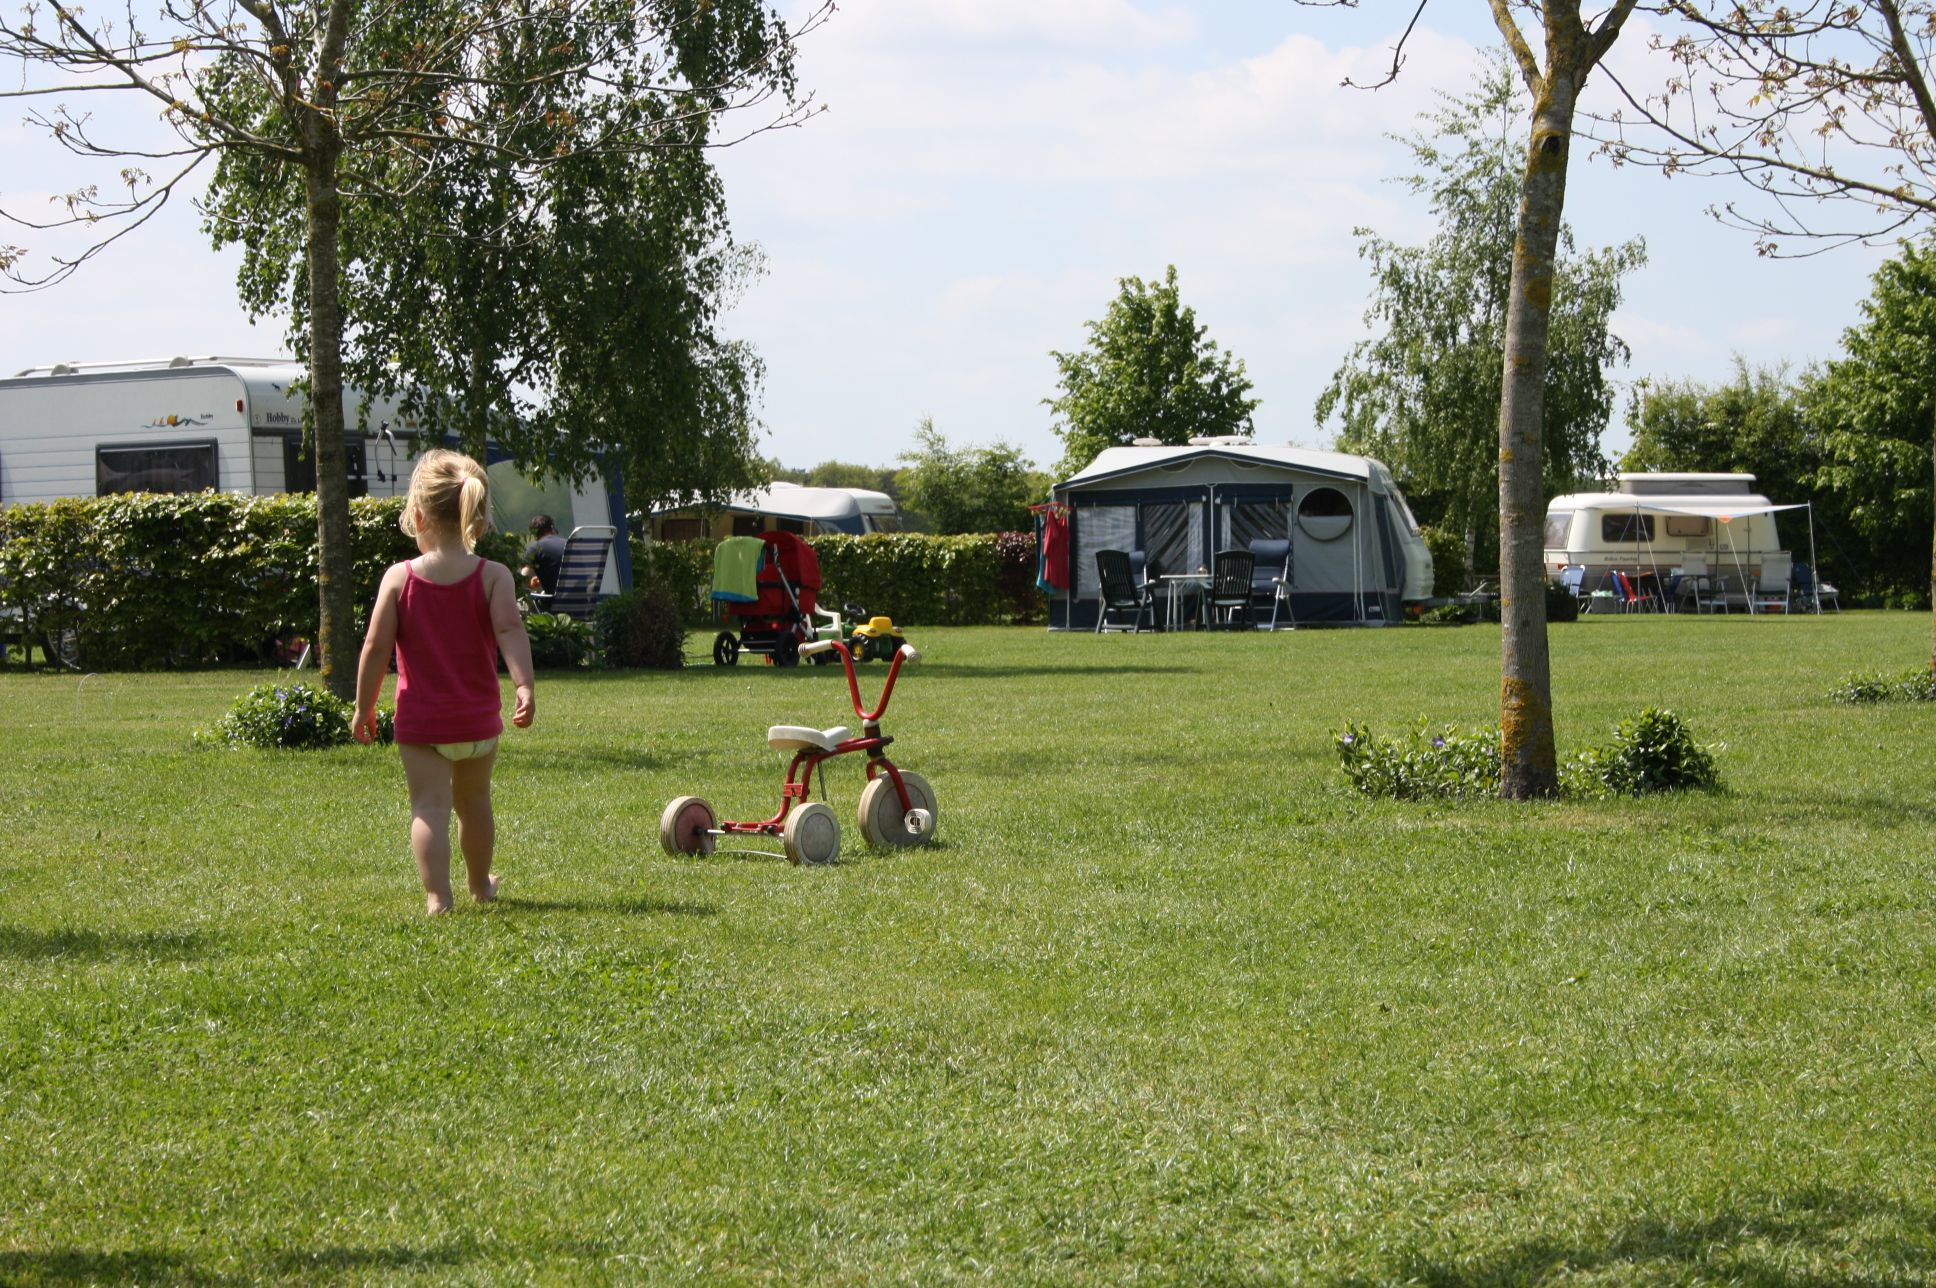 Vekabo - site for finding camping sites in difference European countries